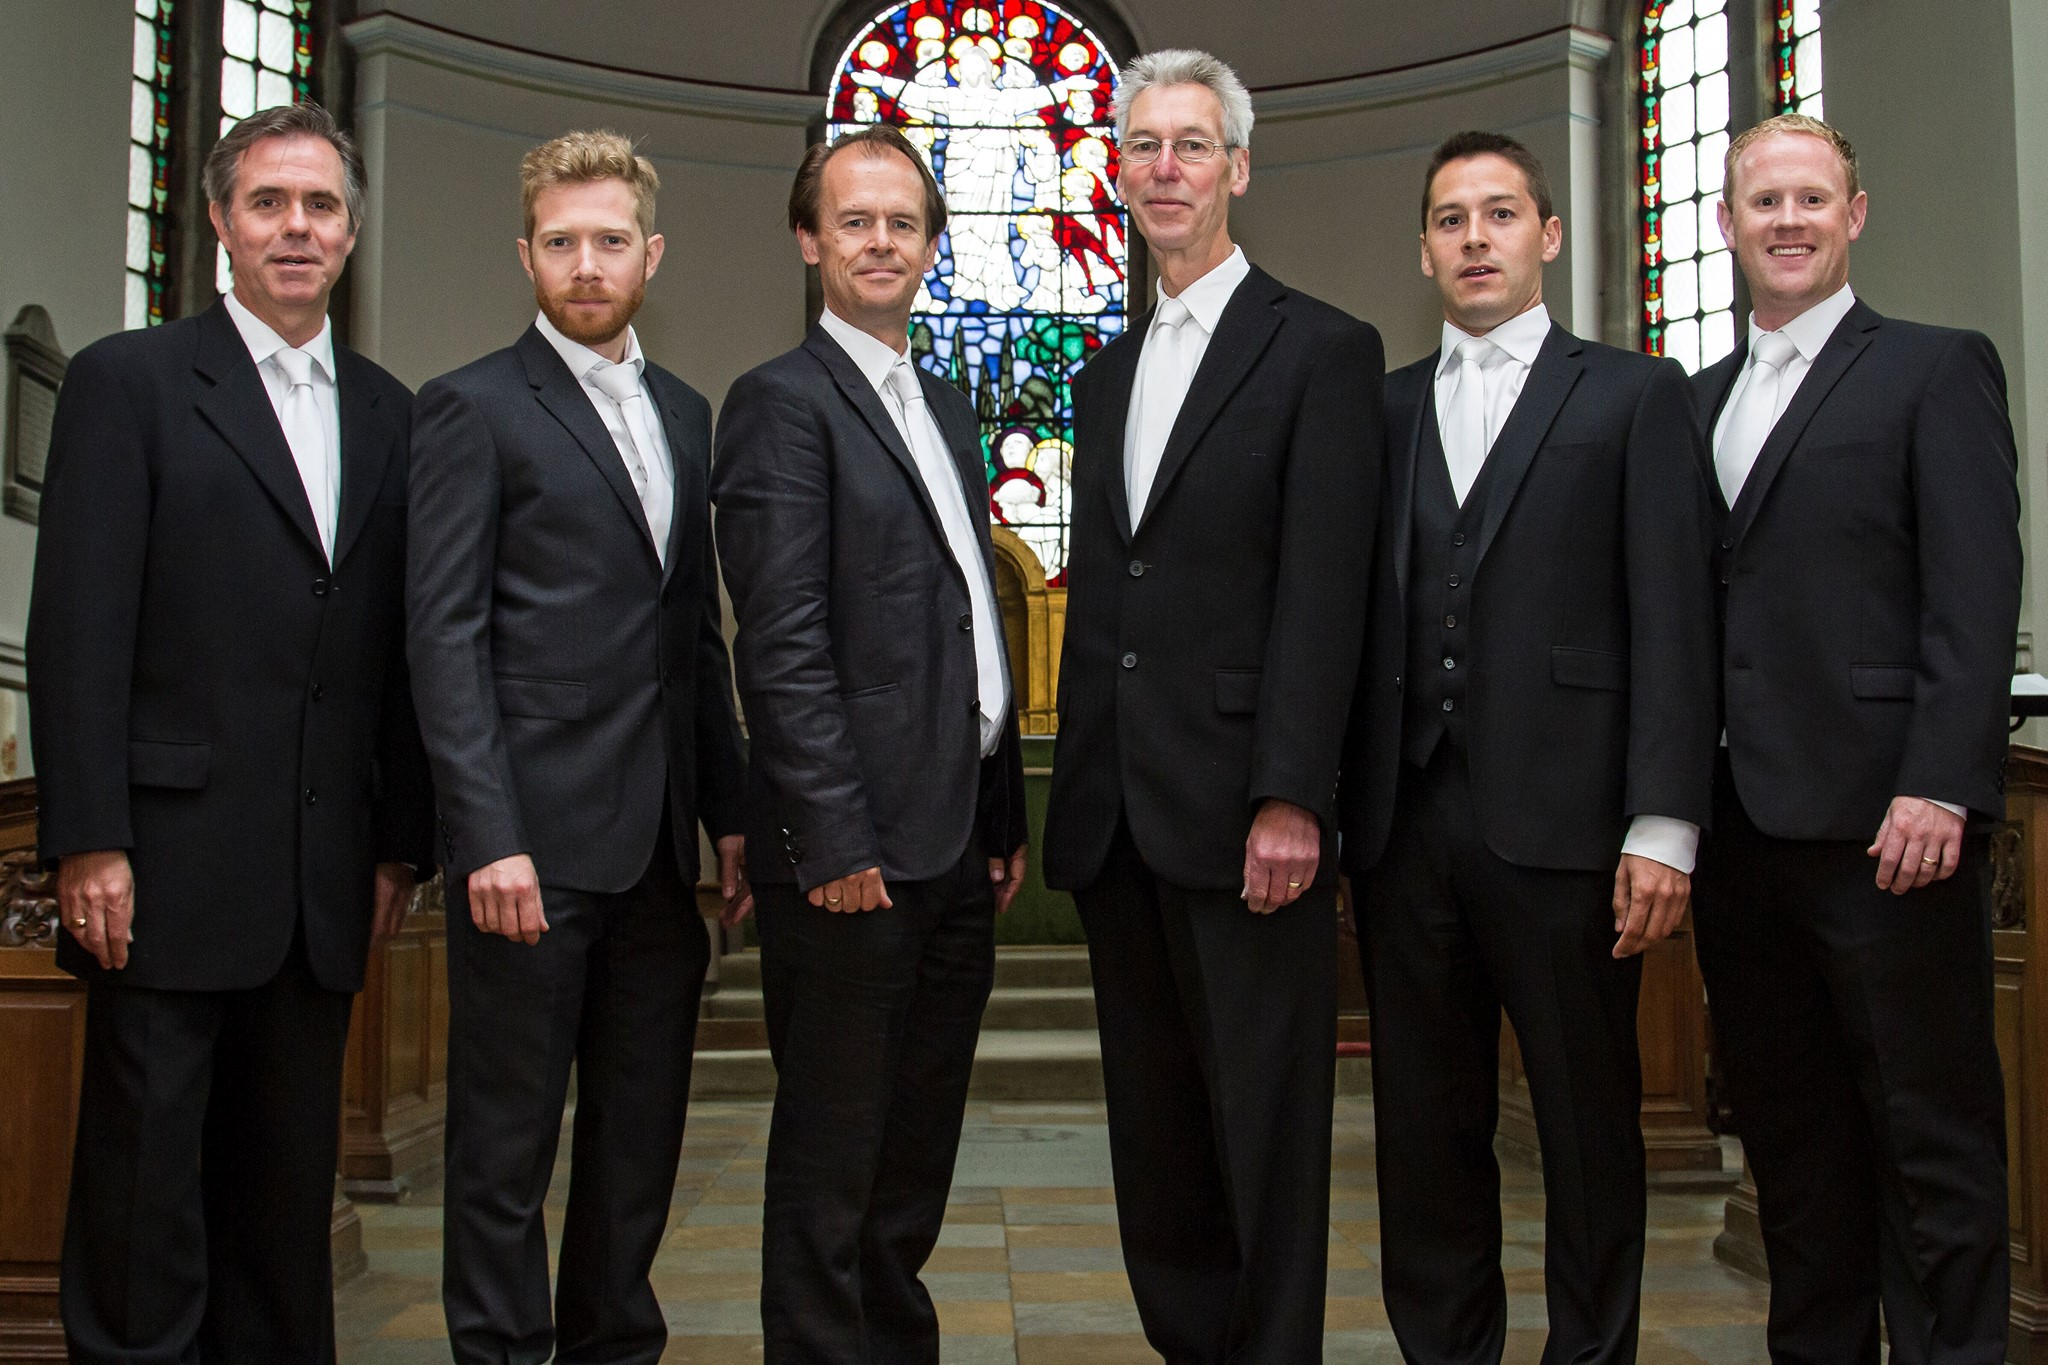 Opus Anglicanum - bewitching sequences of words and music performed by five voices and their narrator, Zeb Soanes.